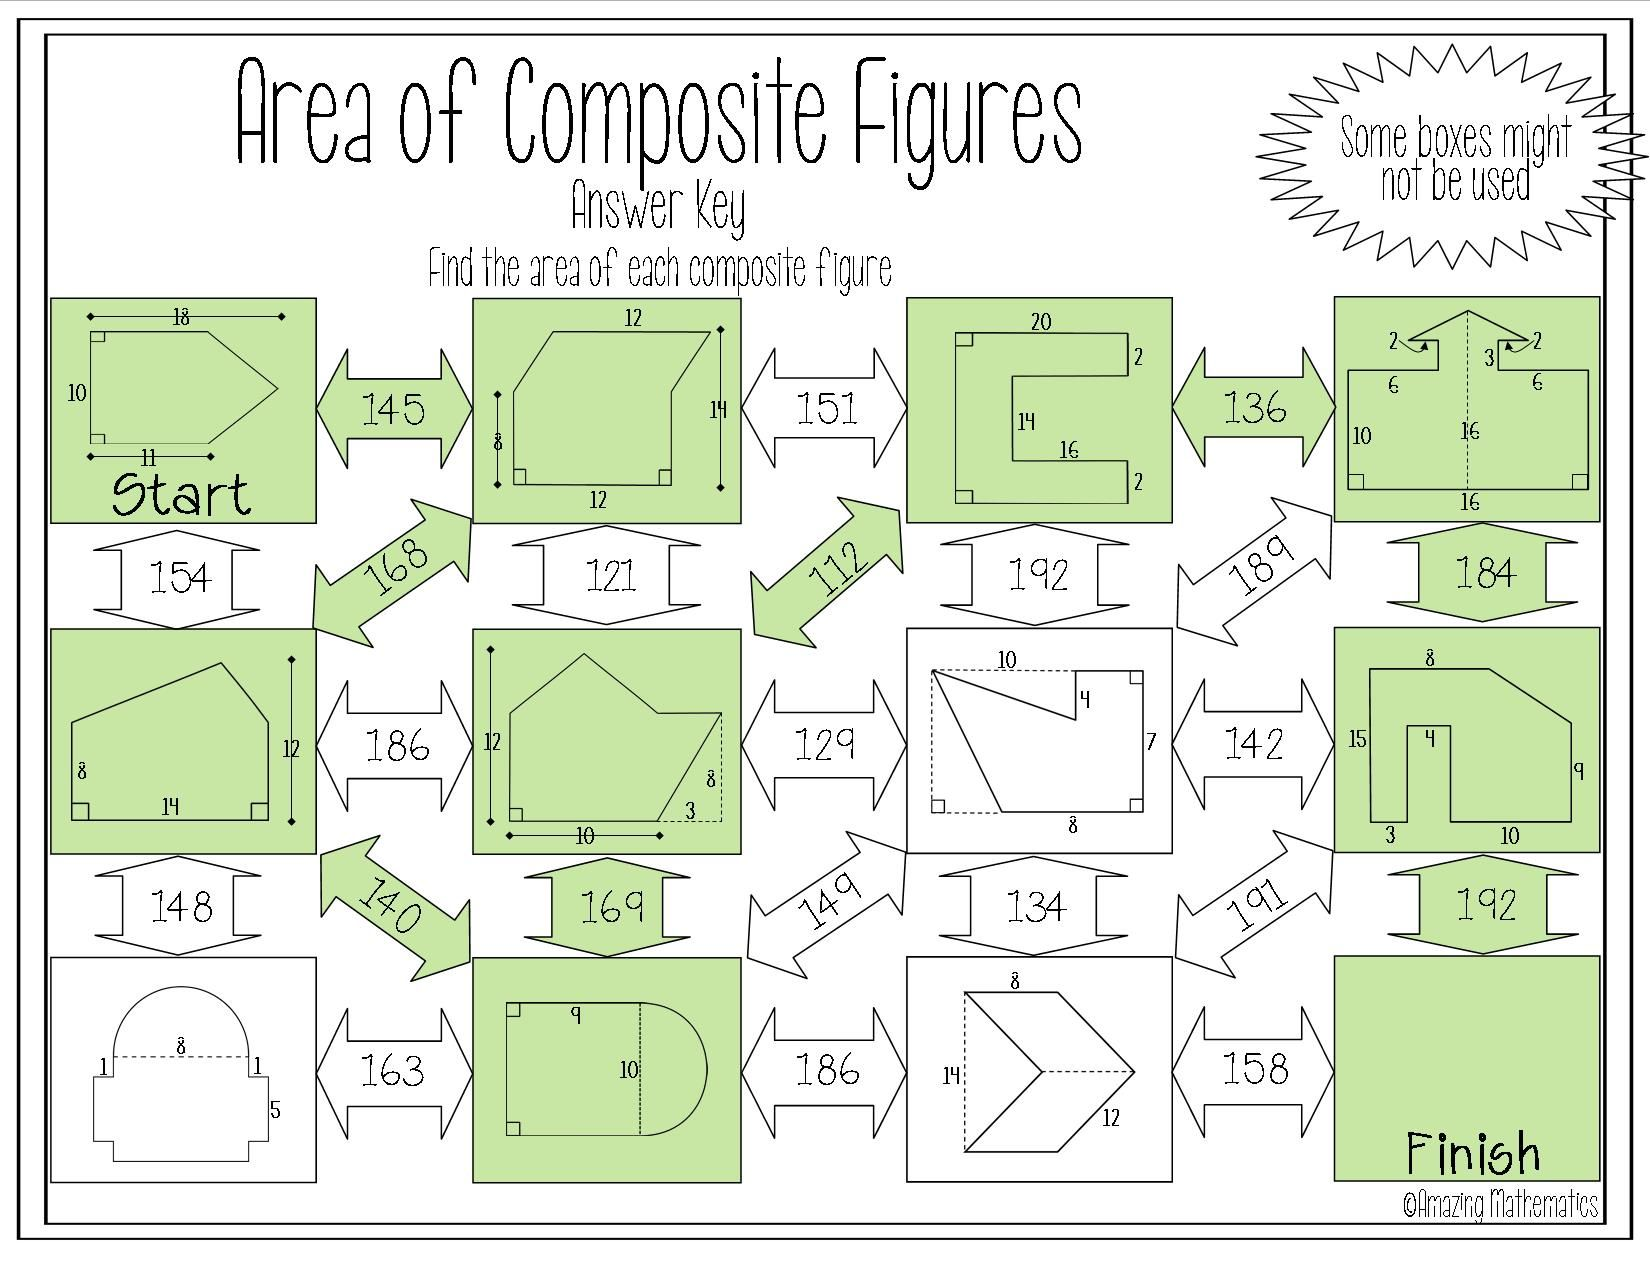 Area of Composite Figures Maze Worksheet | 7th Grade Math Worksheets ...